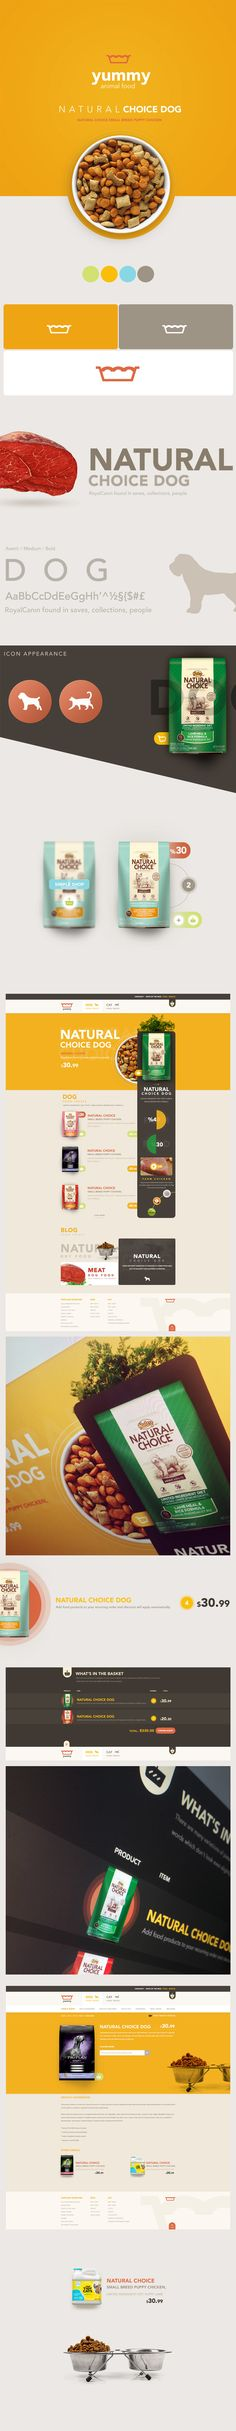 We love the simplicity of this website design! How effective are those large and simple images? #webdesign #minimalist